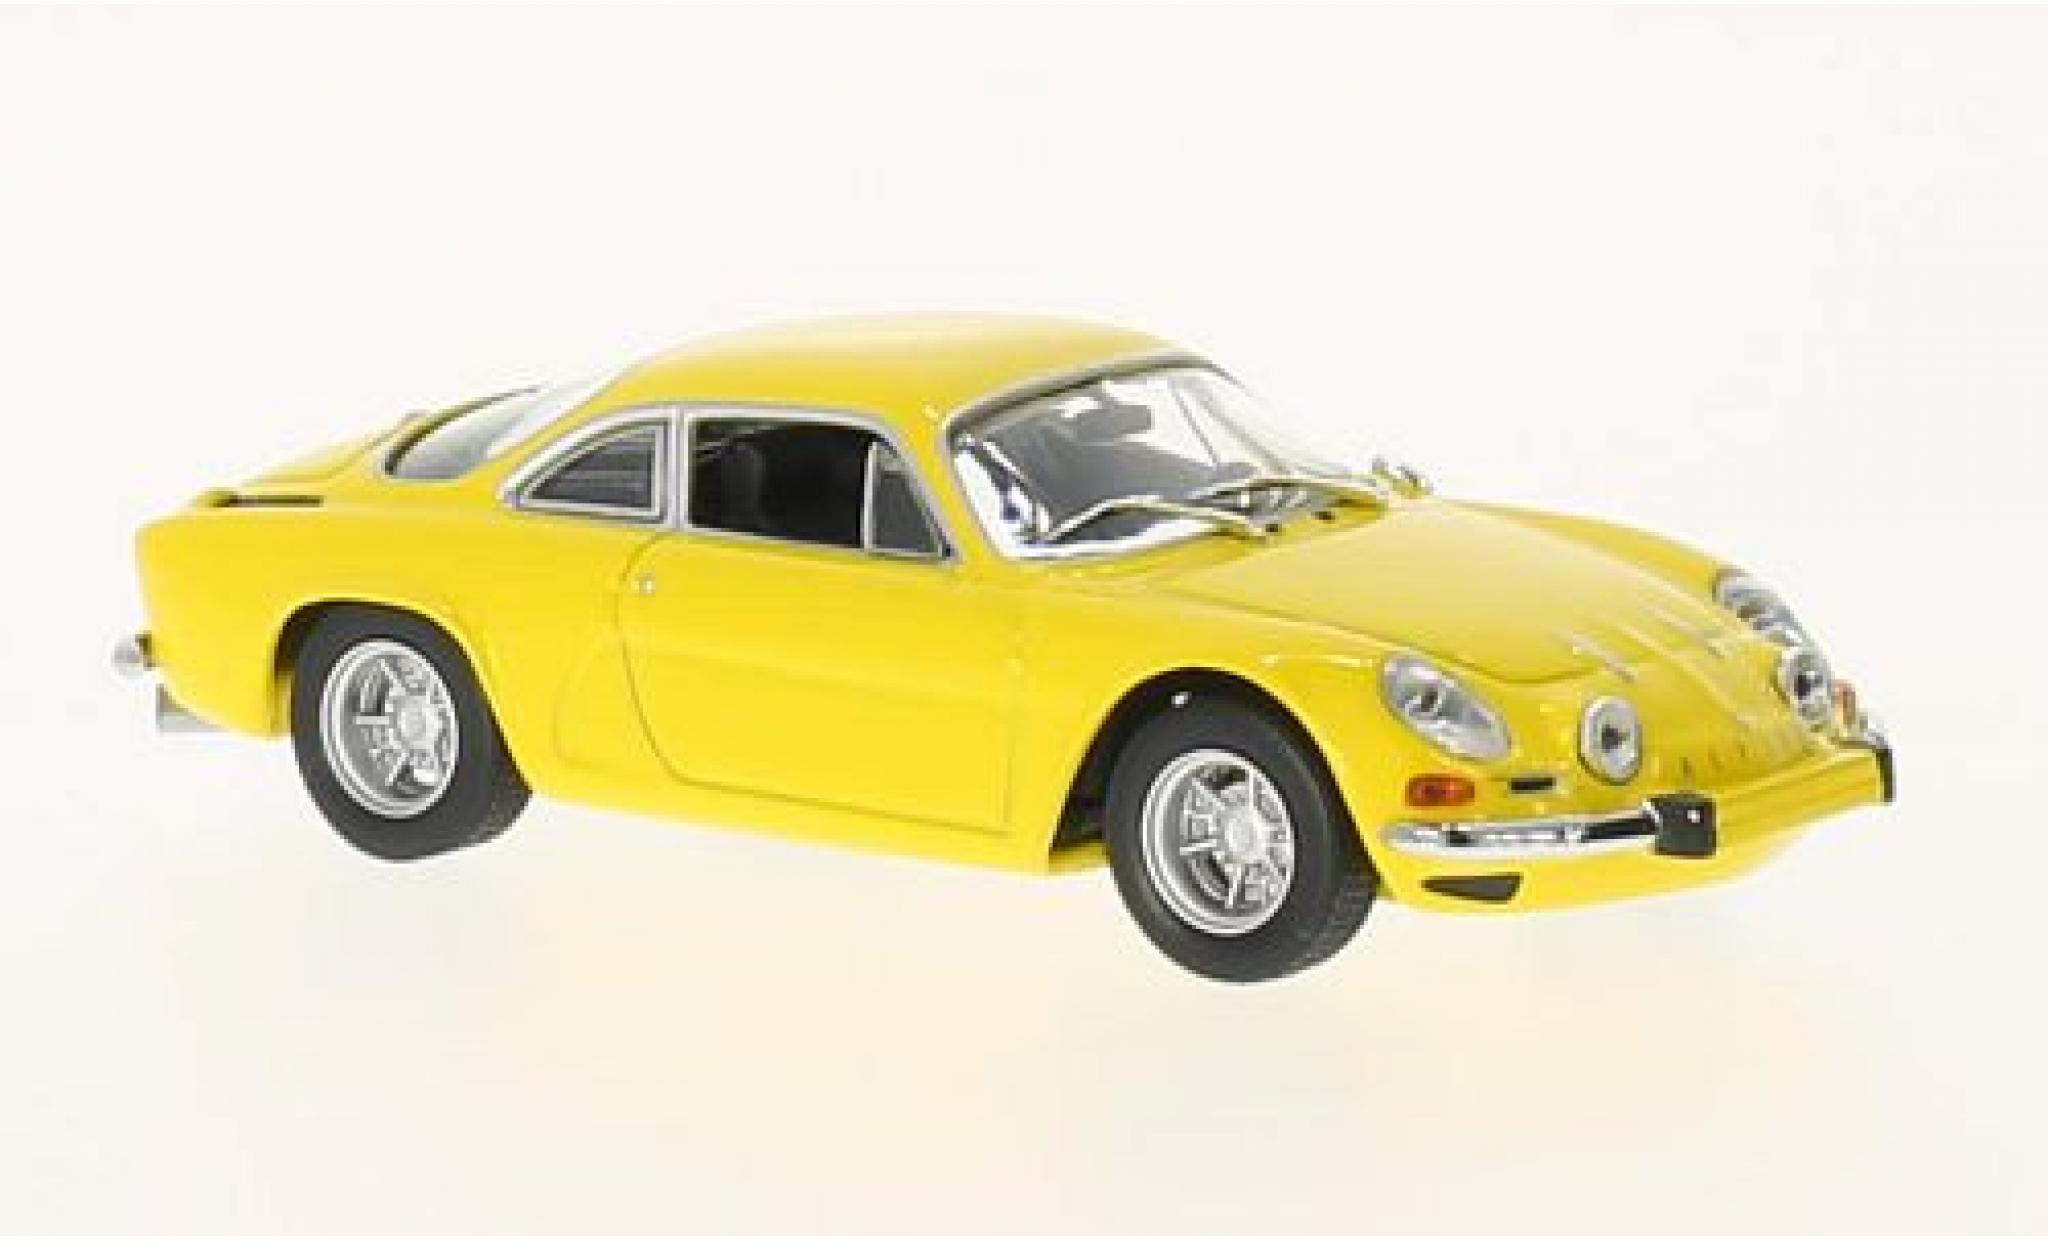 Alpine A110 1/43 Maxichamps Renault yellow 1971